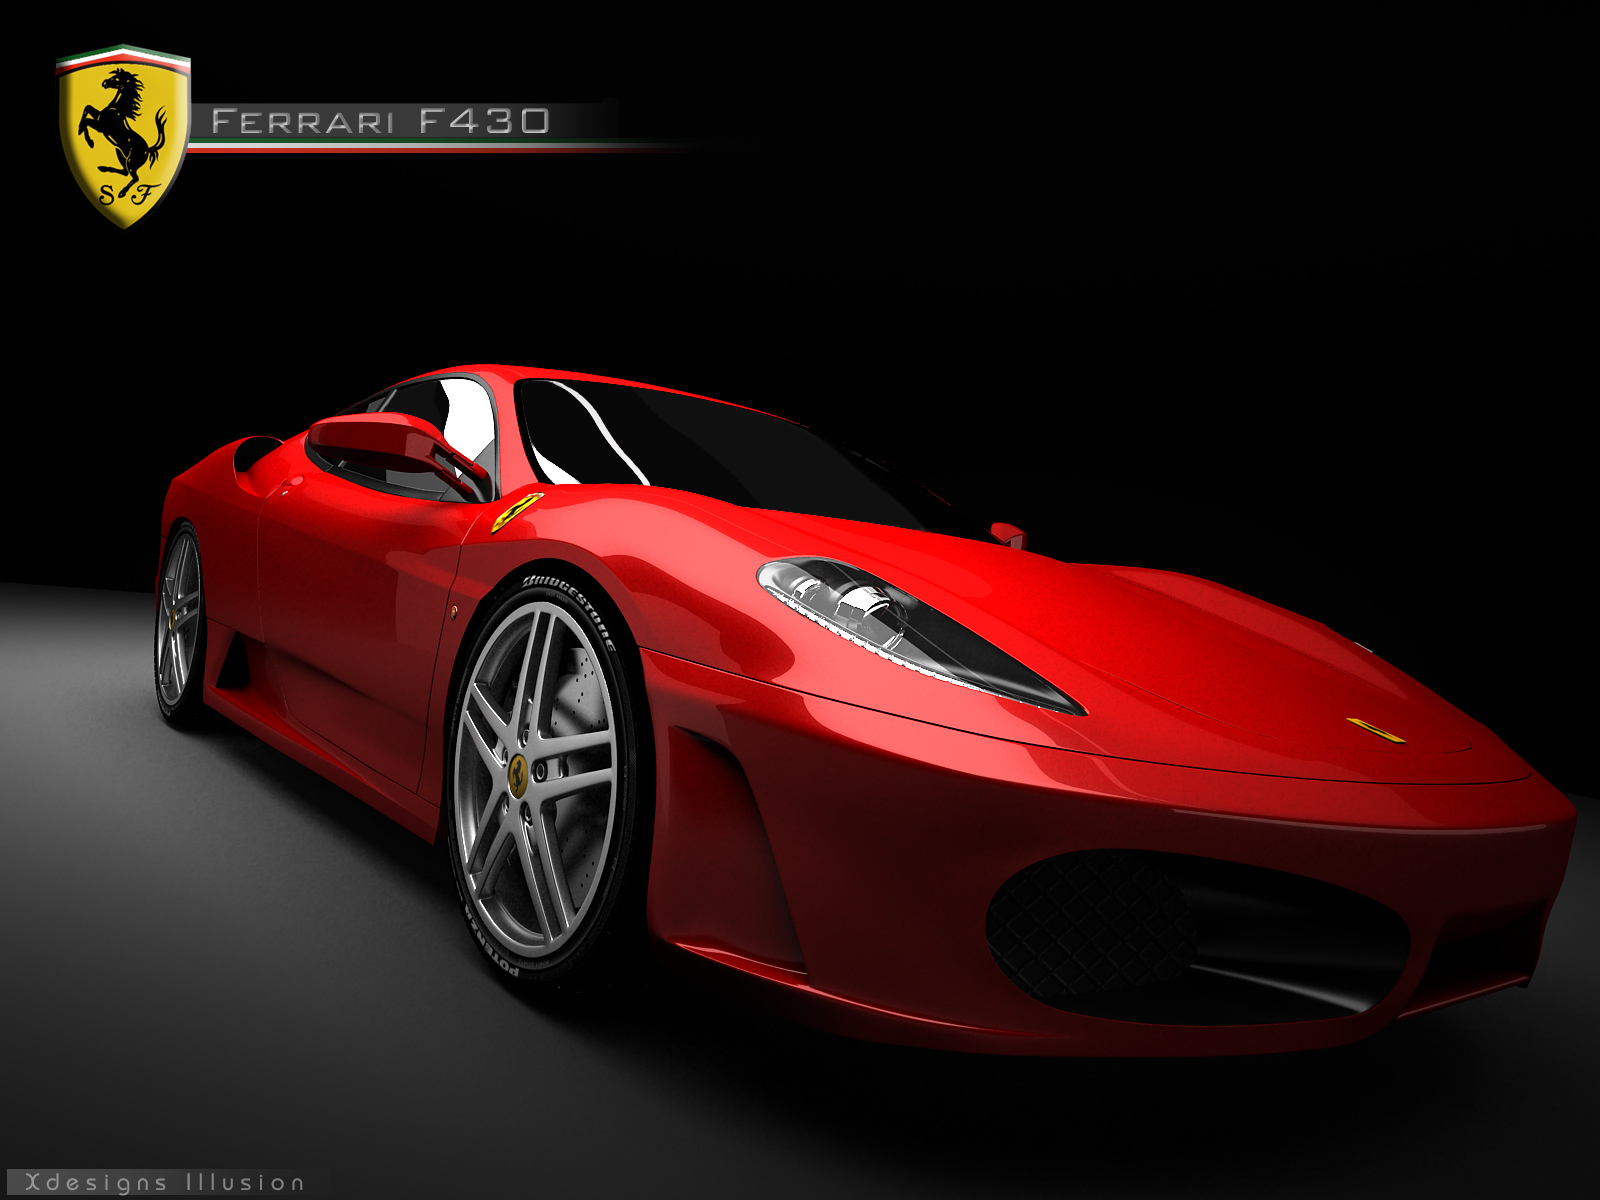 Red Ferrari F430 Wallpapers #544 Wallpaper